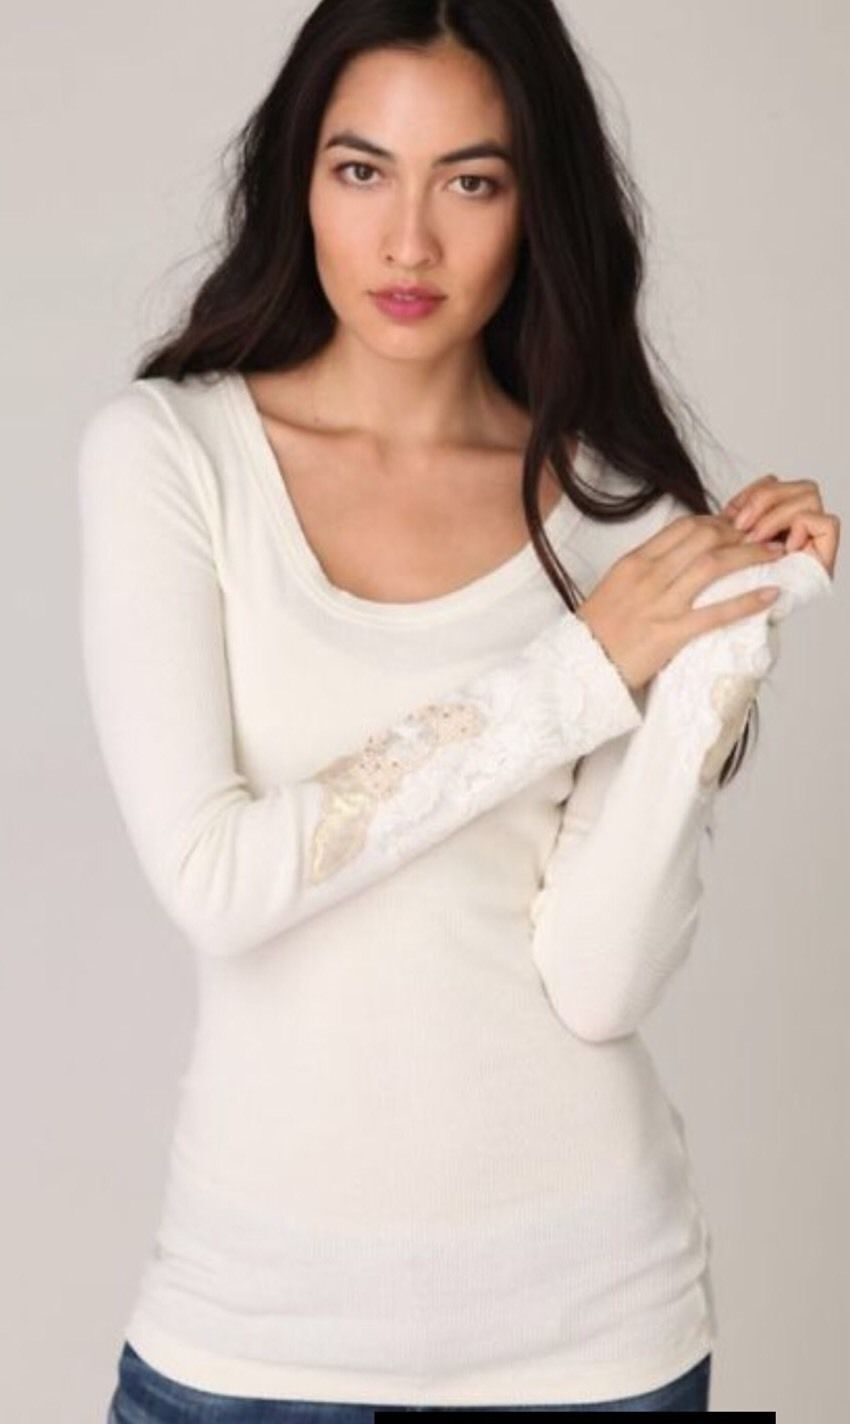 Free People Heart On Your Sleeve Ivory Embellished Cuff Thermal Top Shirt L Rare